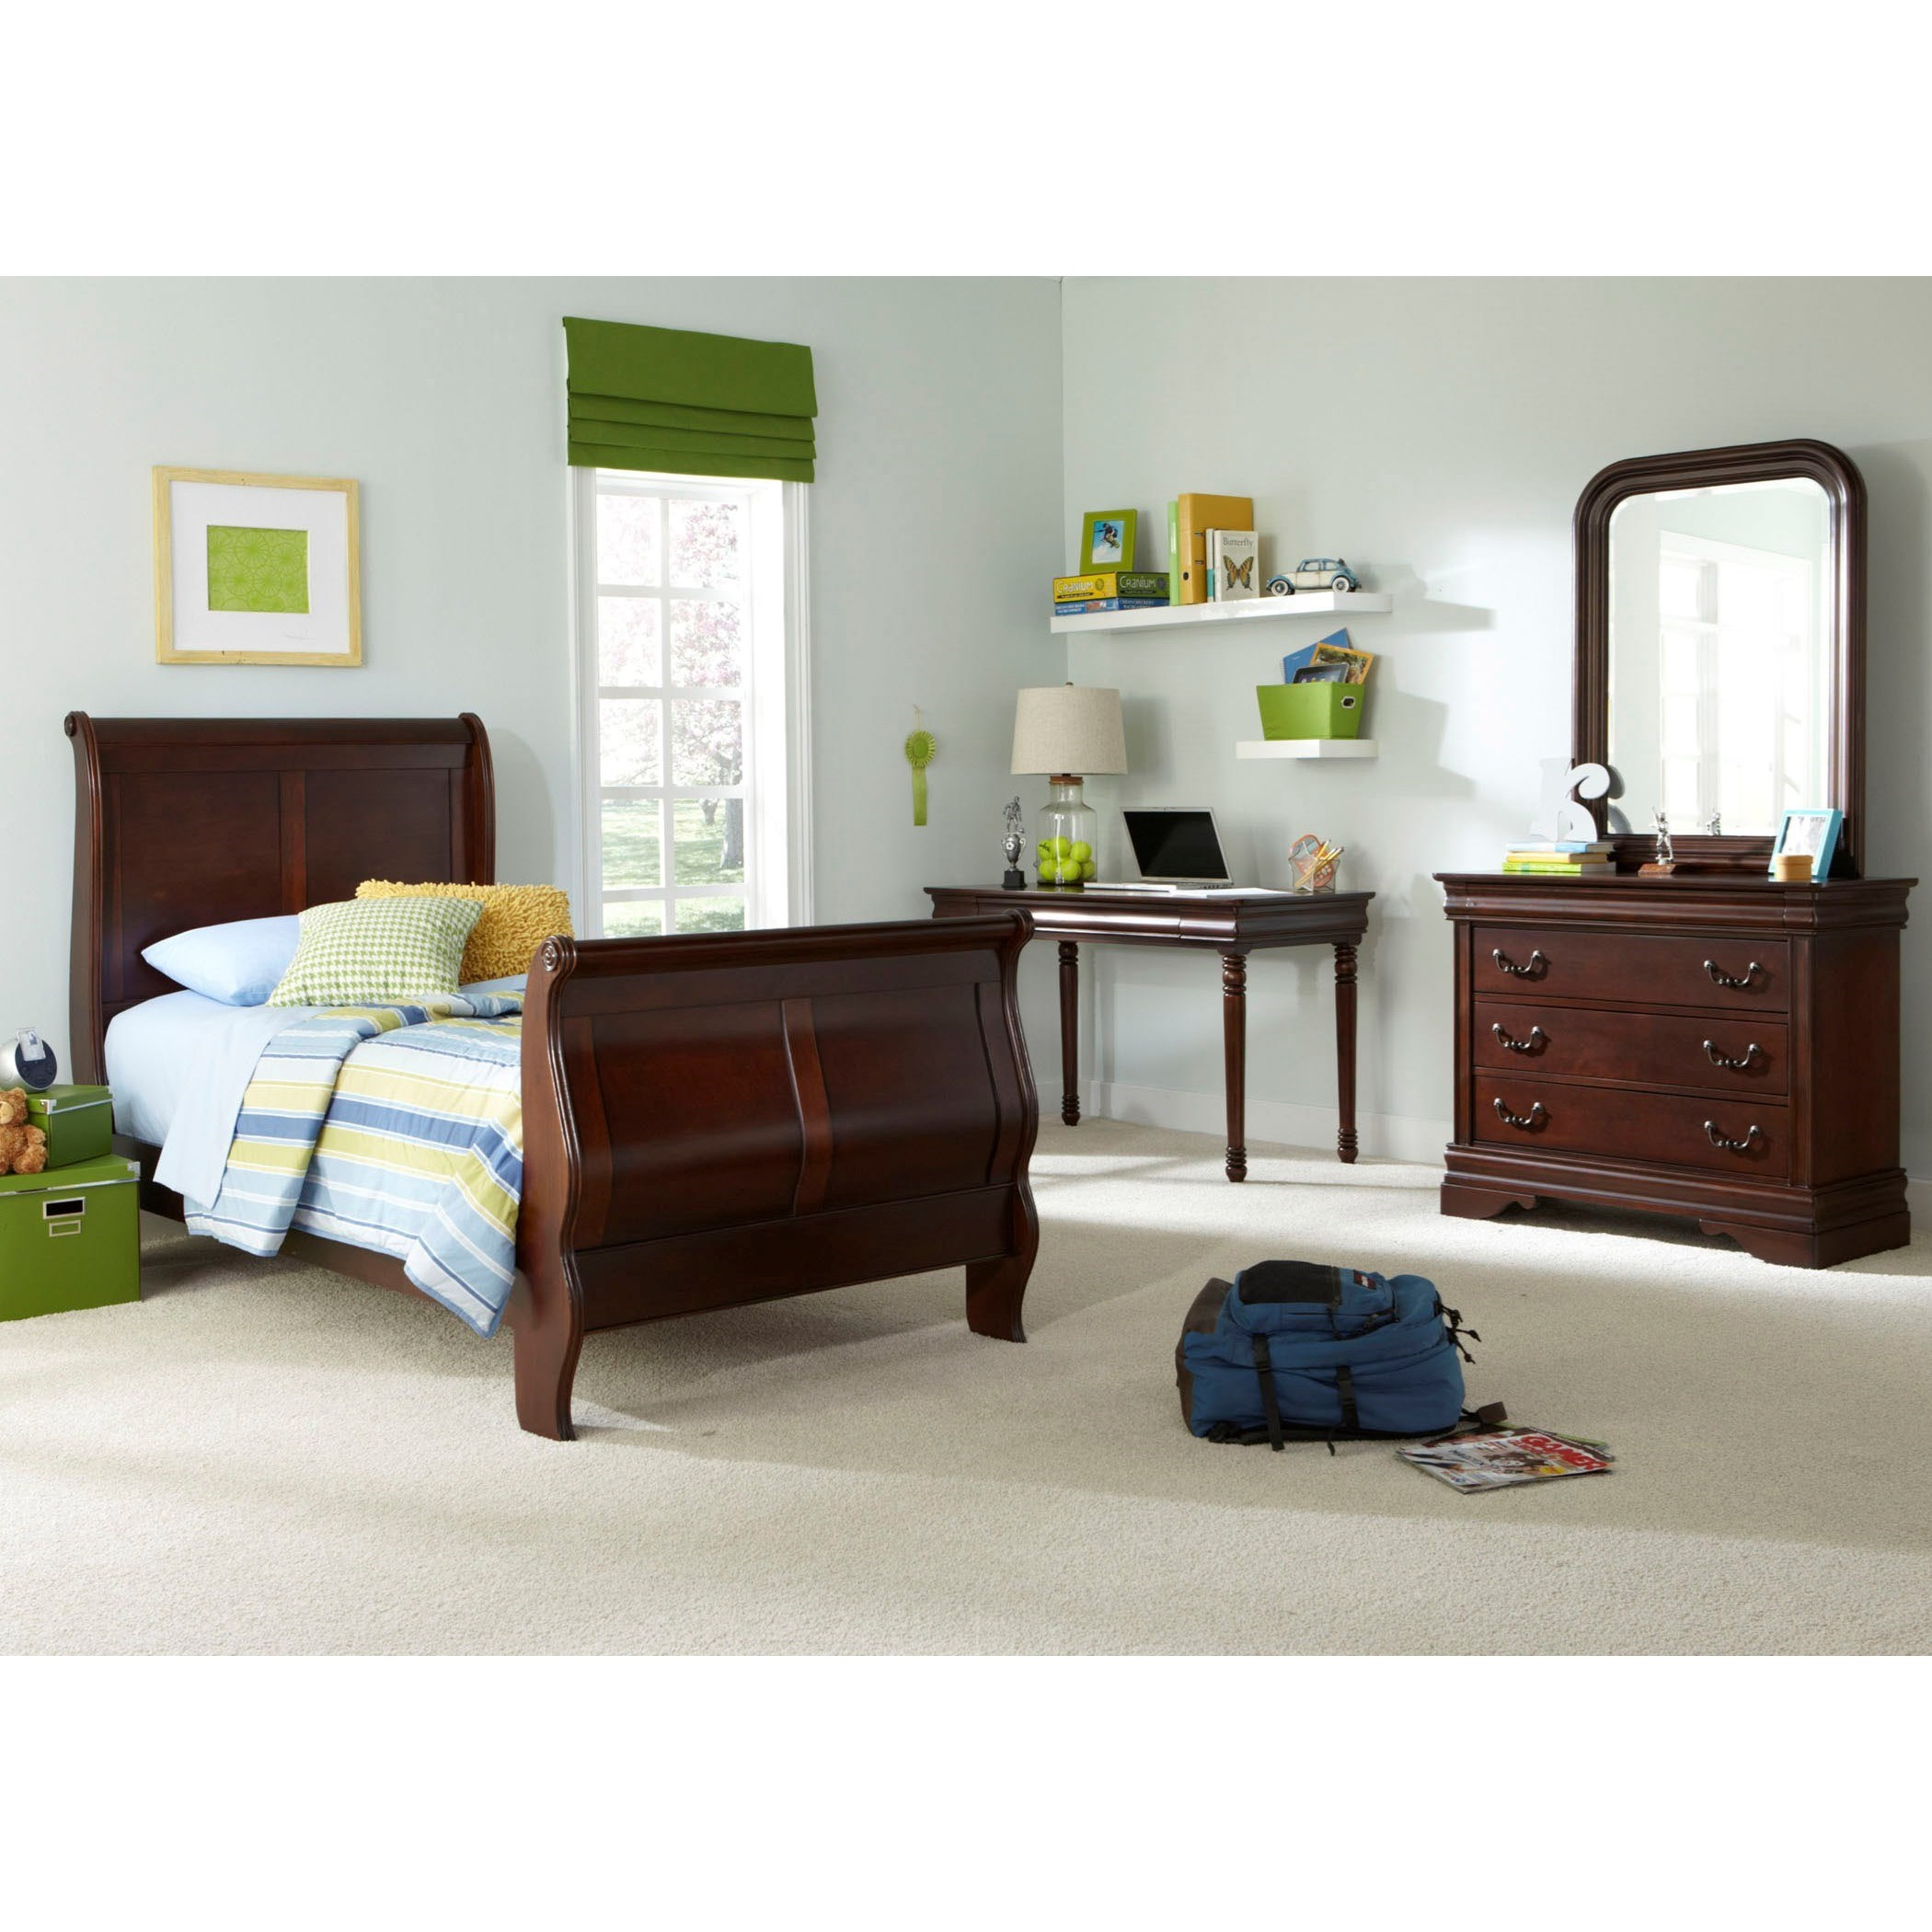 Carriage Court Twin Sleigh Bed, Dresser & Mirror by Liberty Furniture at Northeast Factory Direct